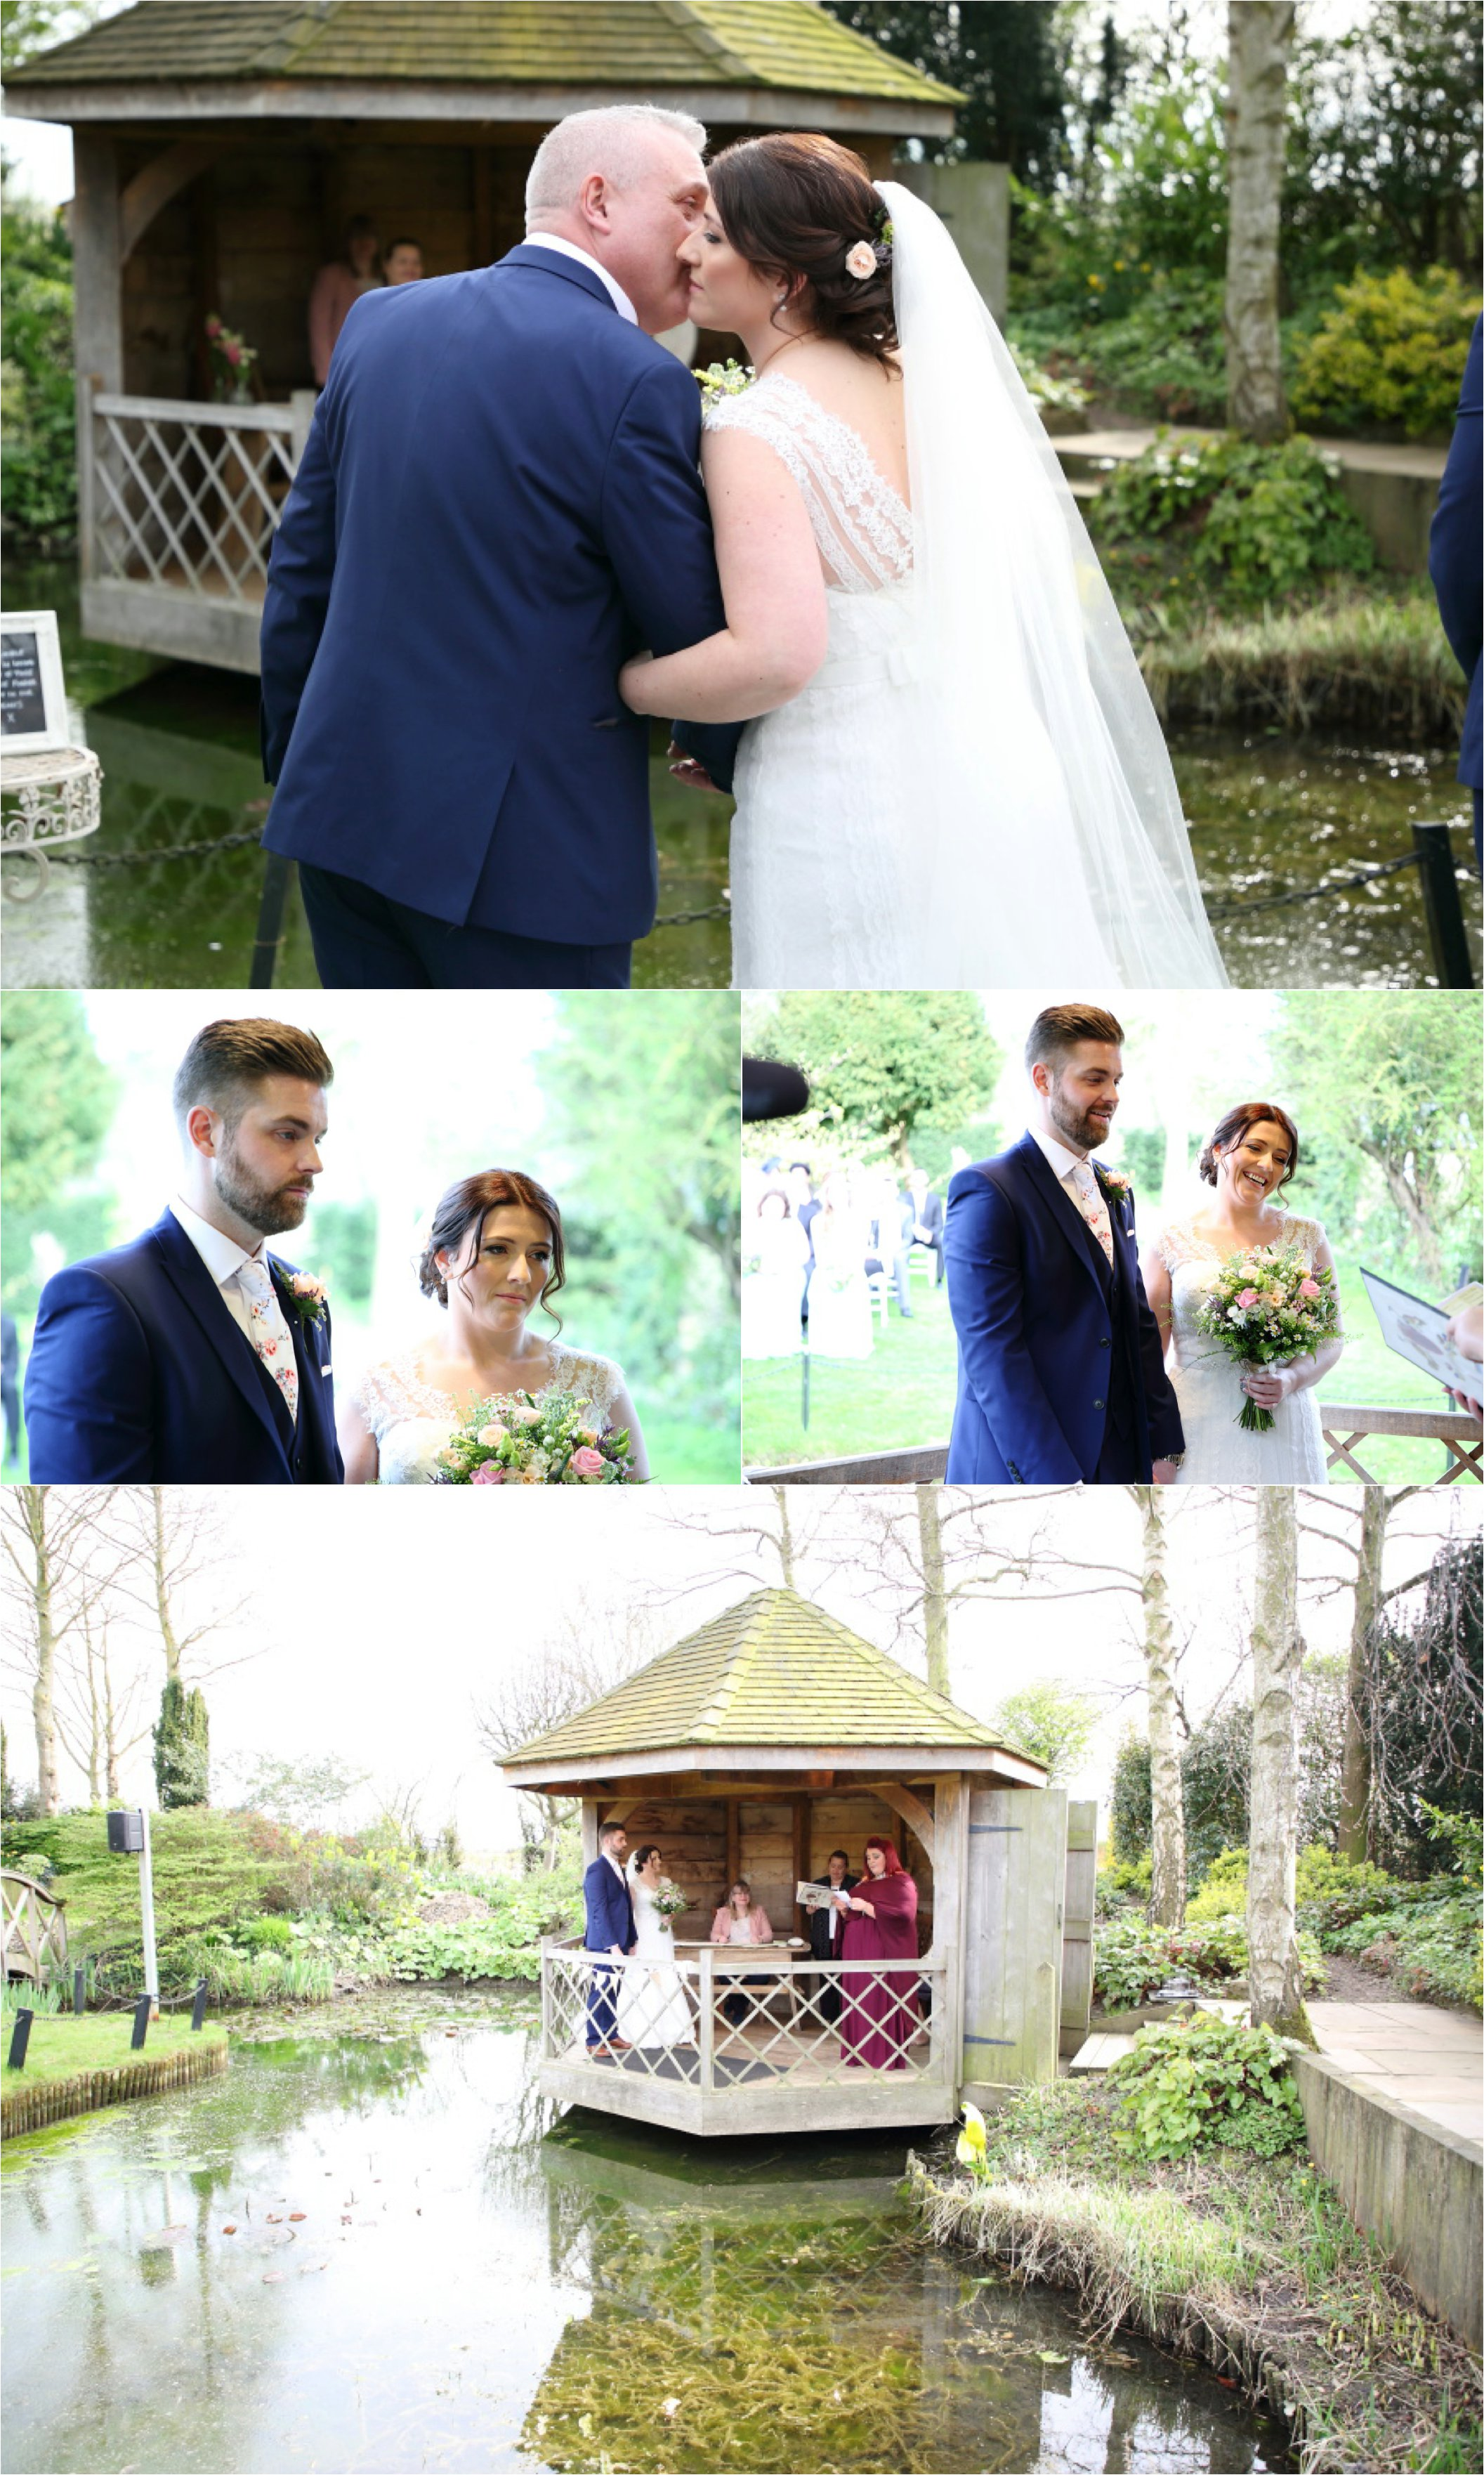 outdoor wedding ceremony at south farm, Cambridge